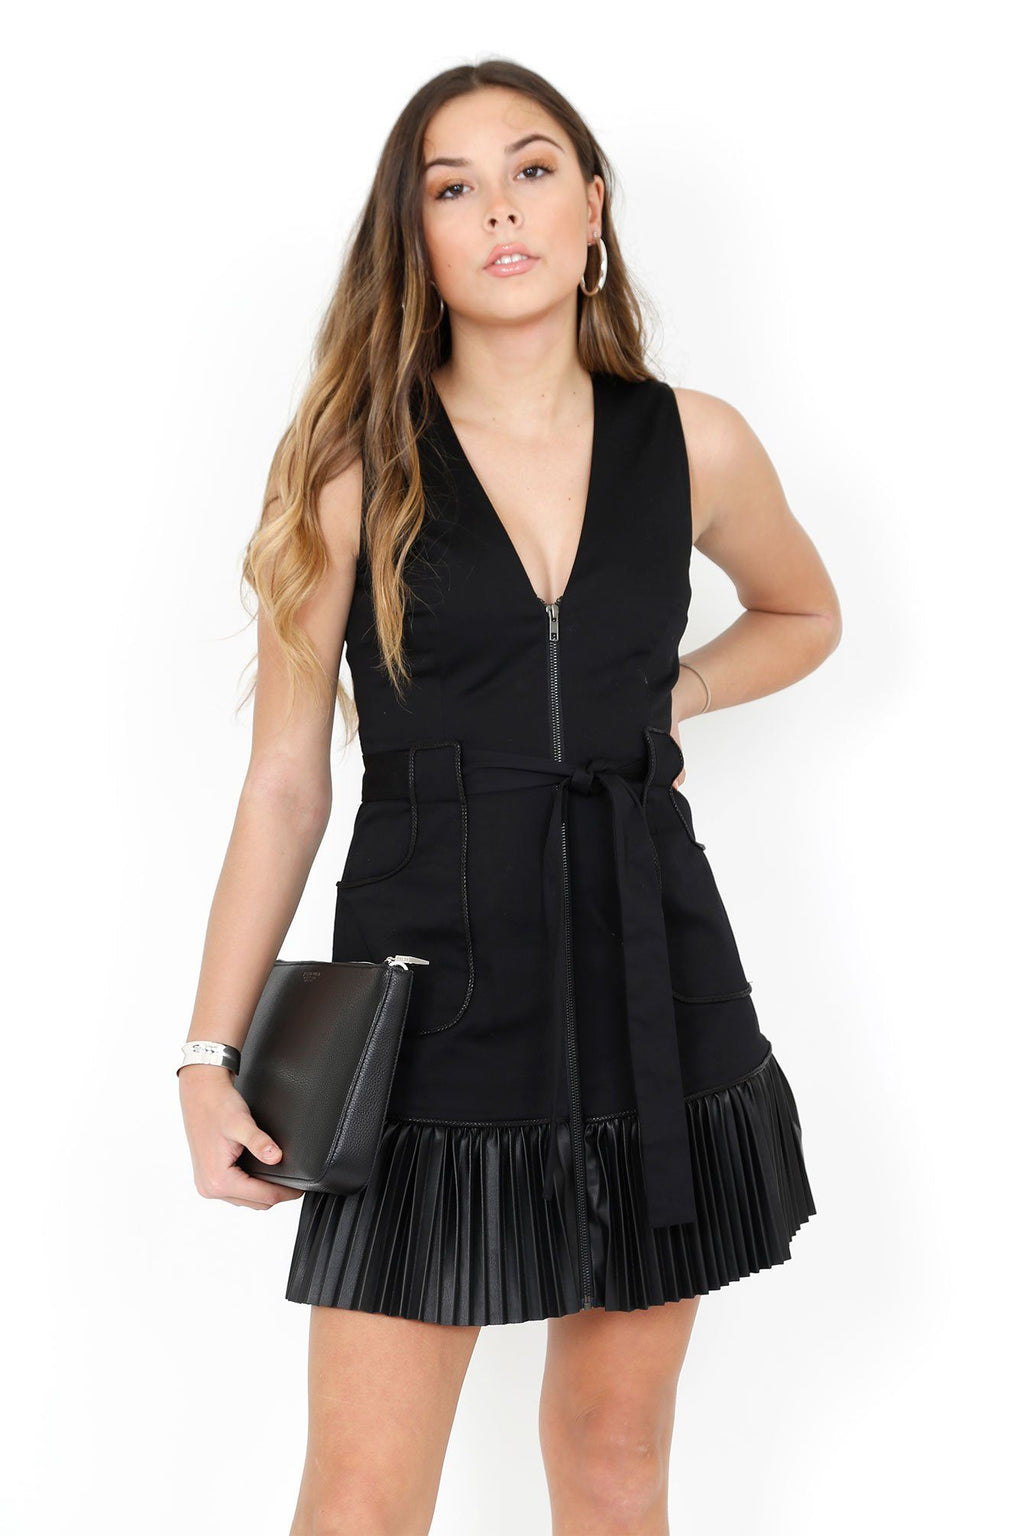 ALEXIS | Kelsie Dress - Black